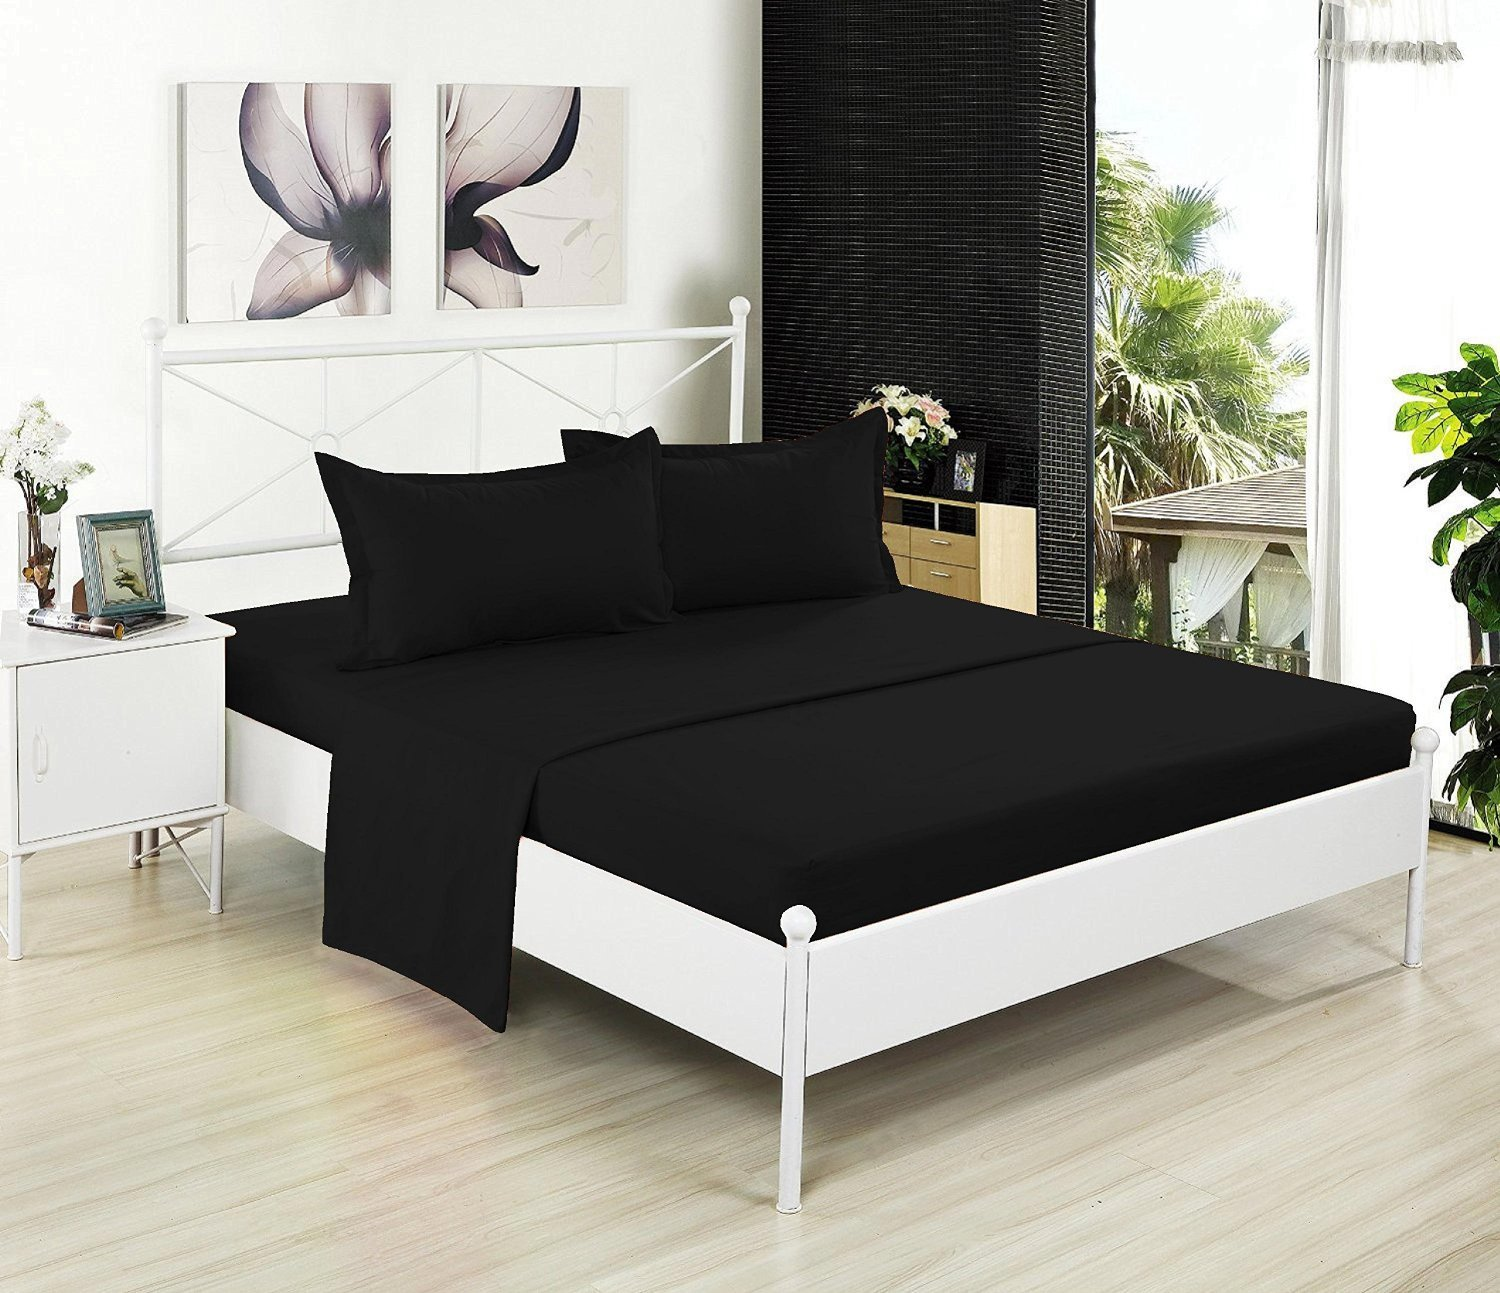 Full Flat Sheet Only - Soft & Comfy 100% Cotton- By Crescent Bedding (Full , Black)